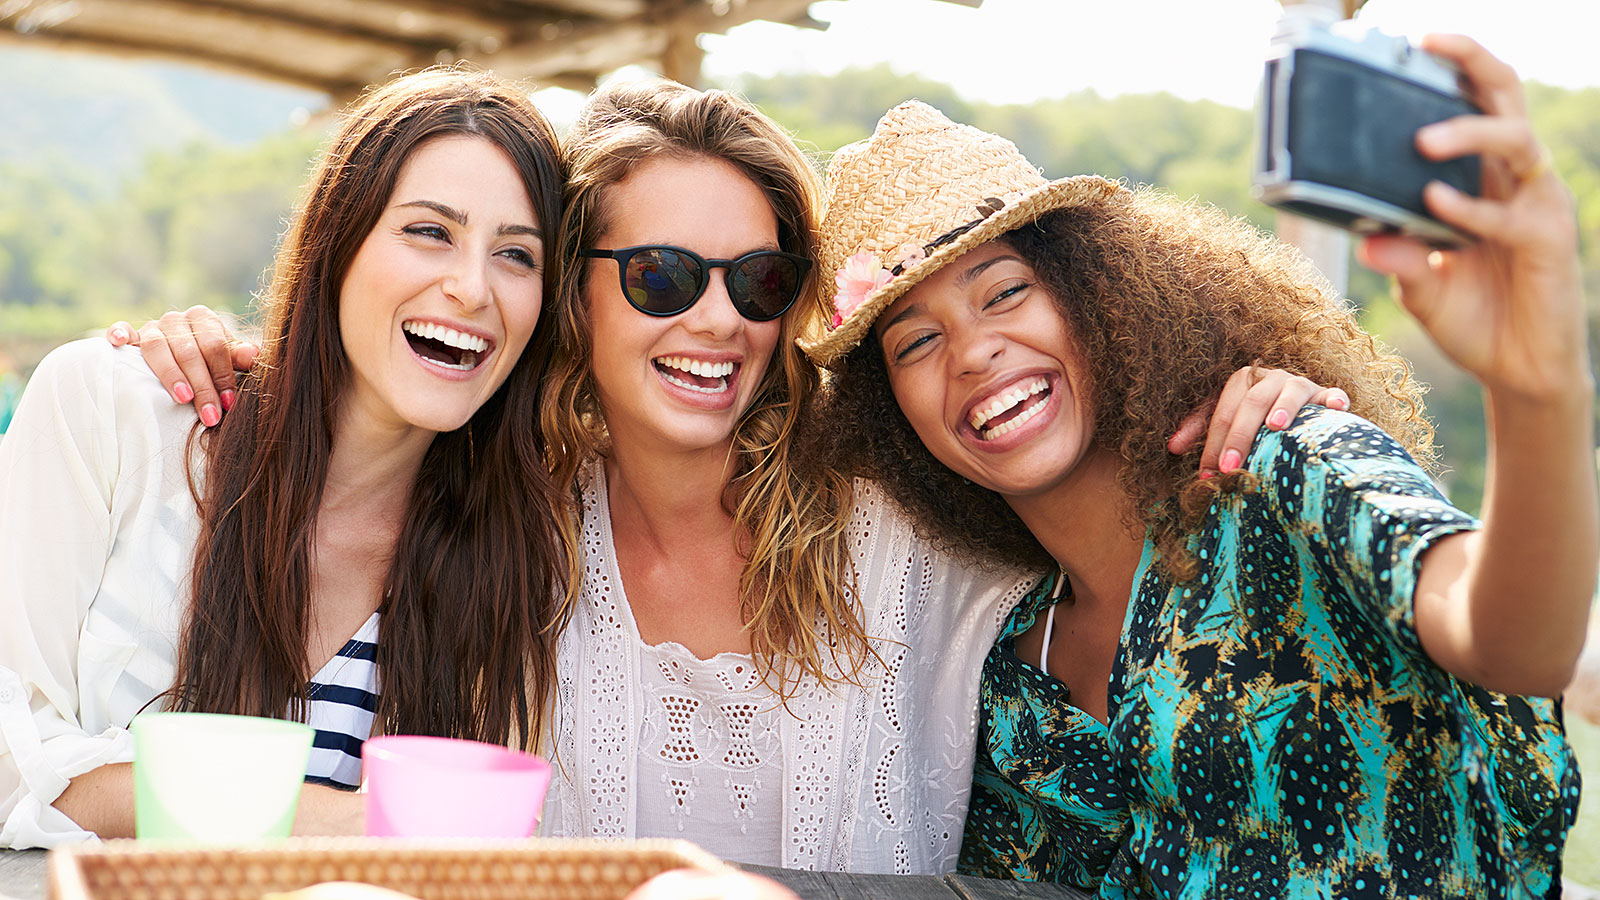 These are the best ways to make friends as an adult